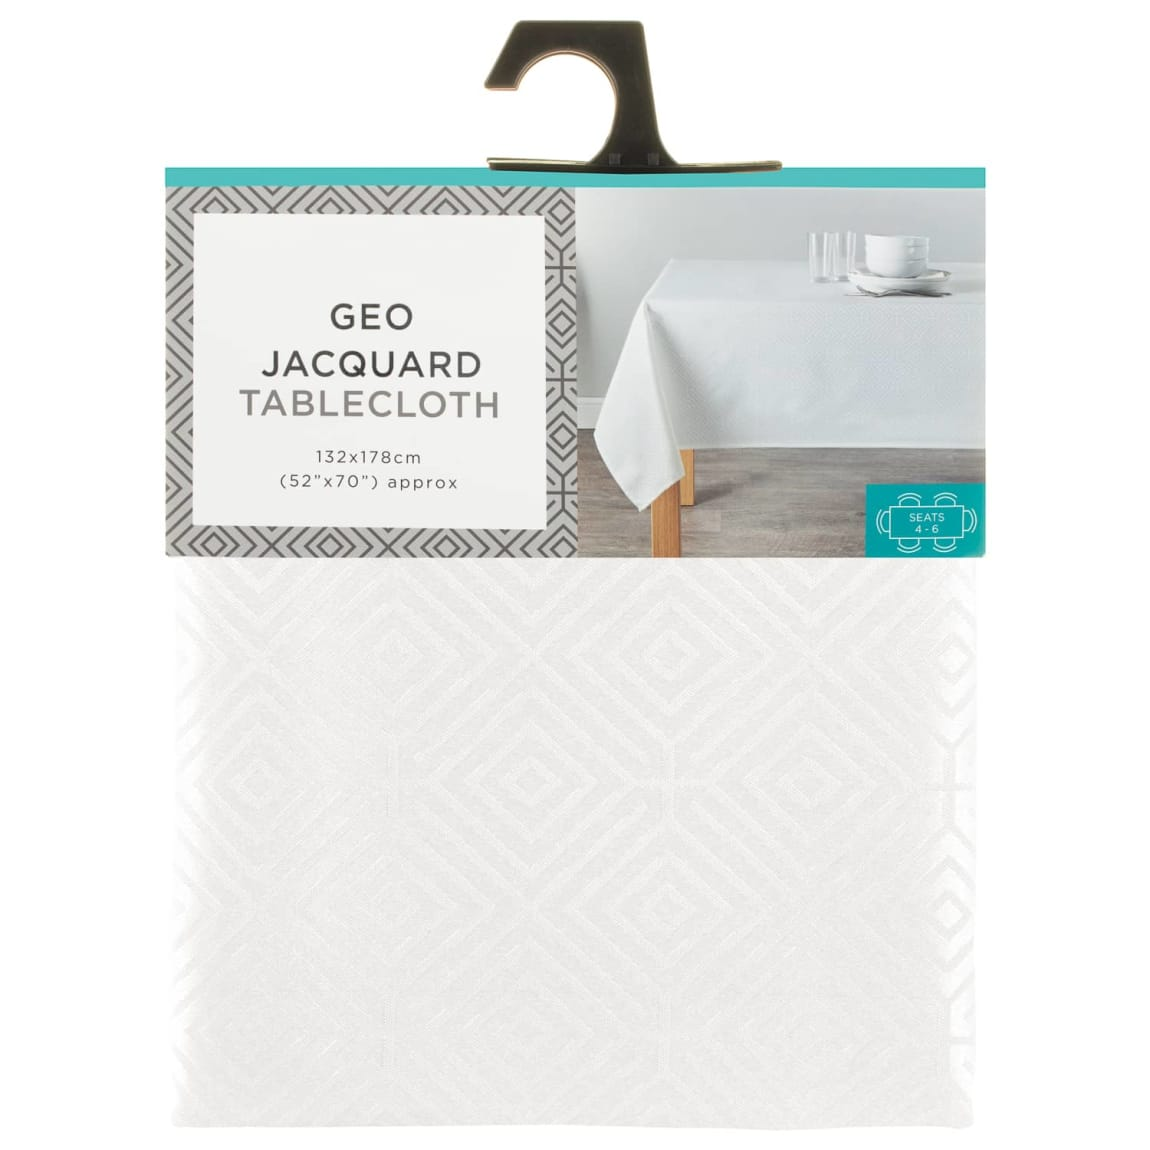 Geo Jacquard Tablecloth 132 x 178cm - White